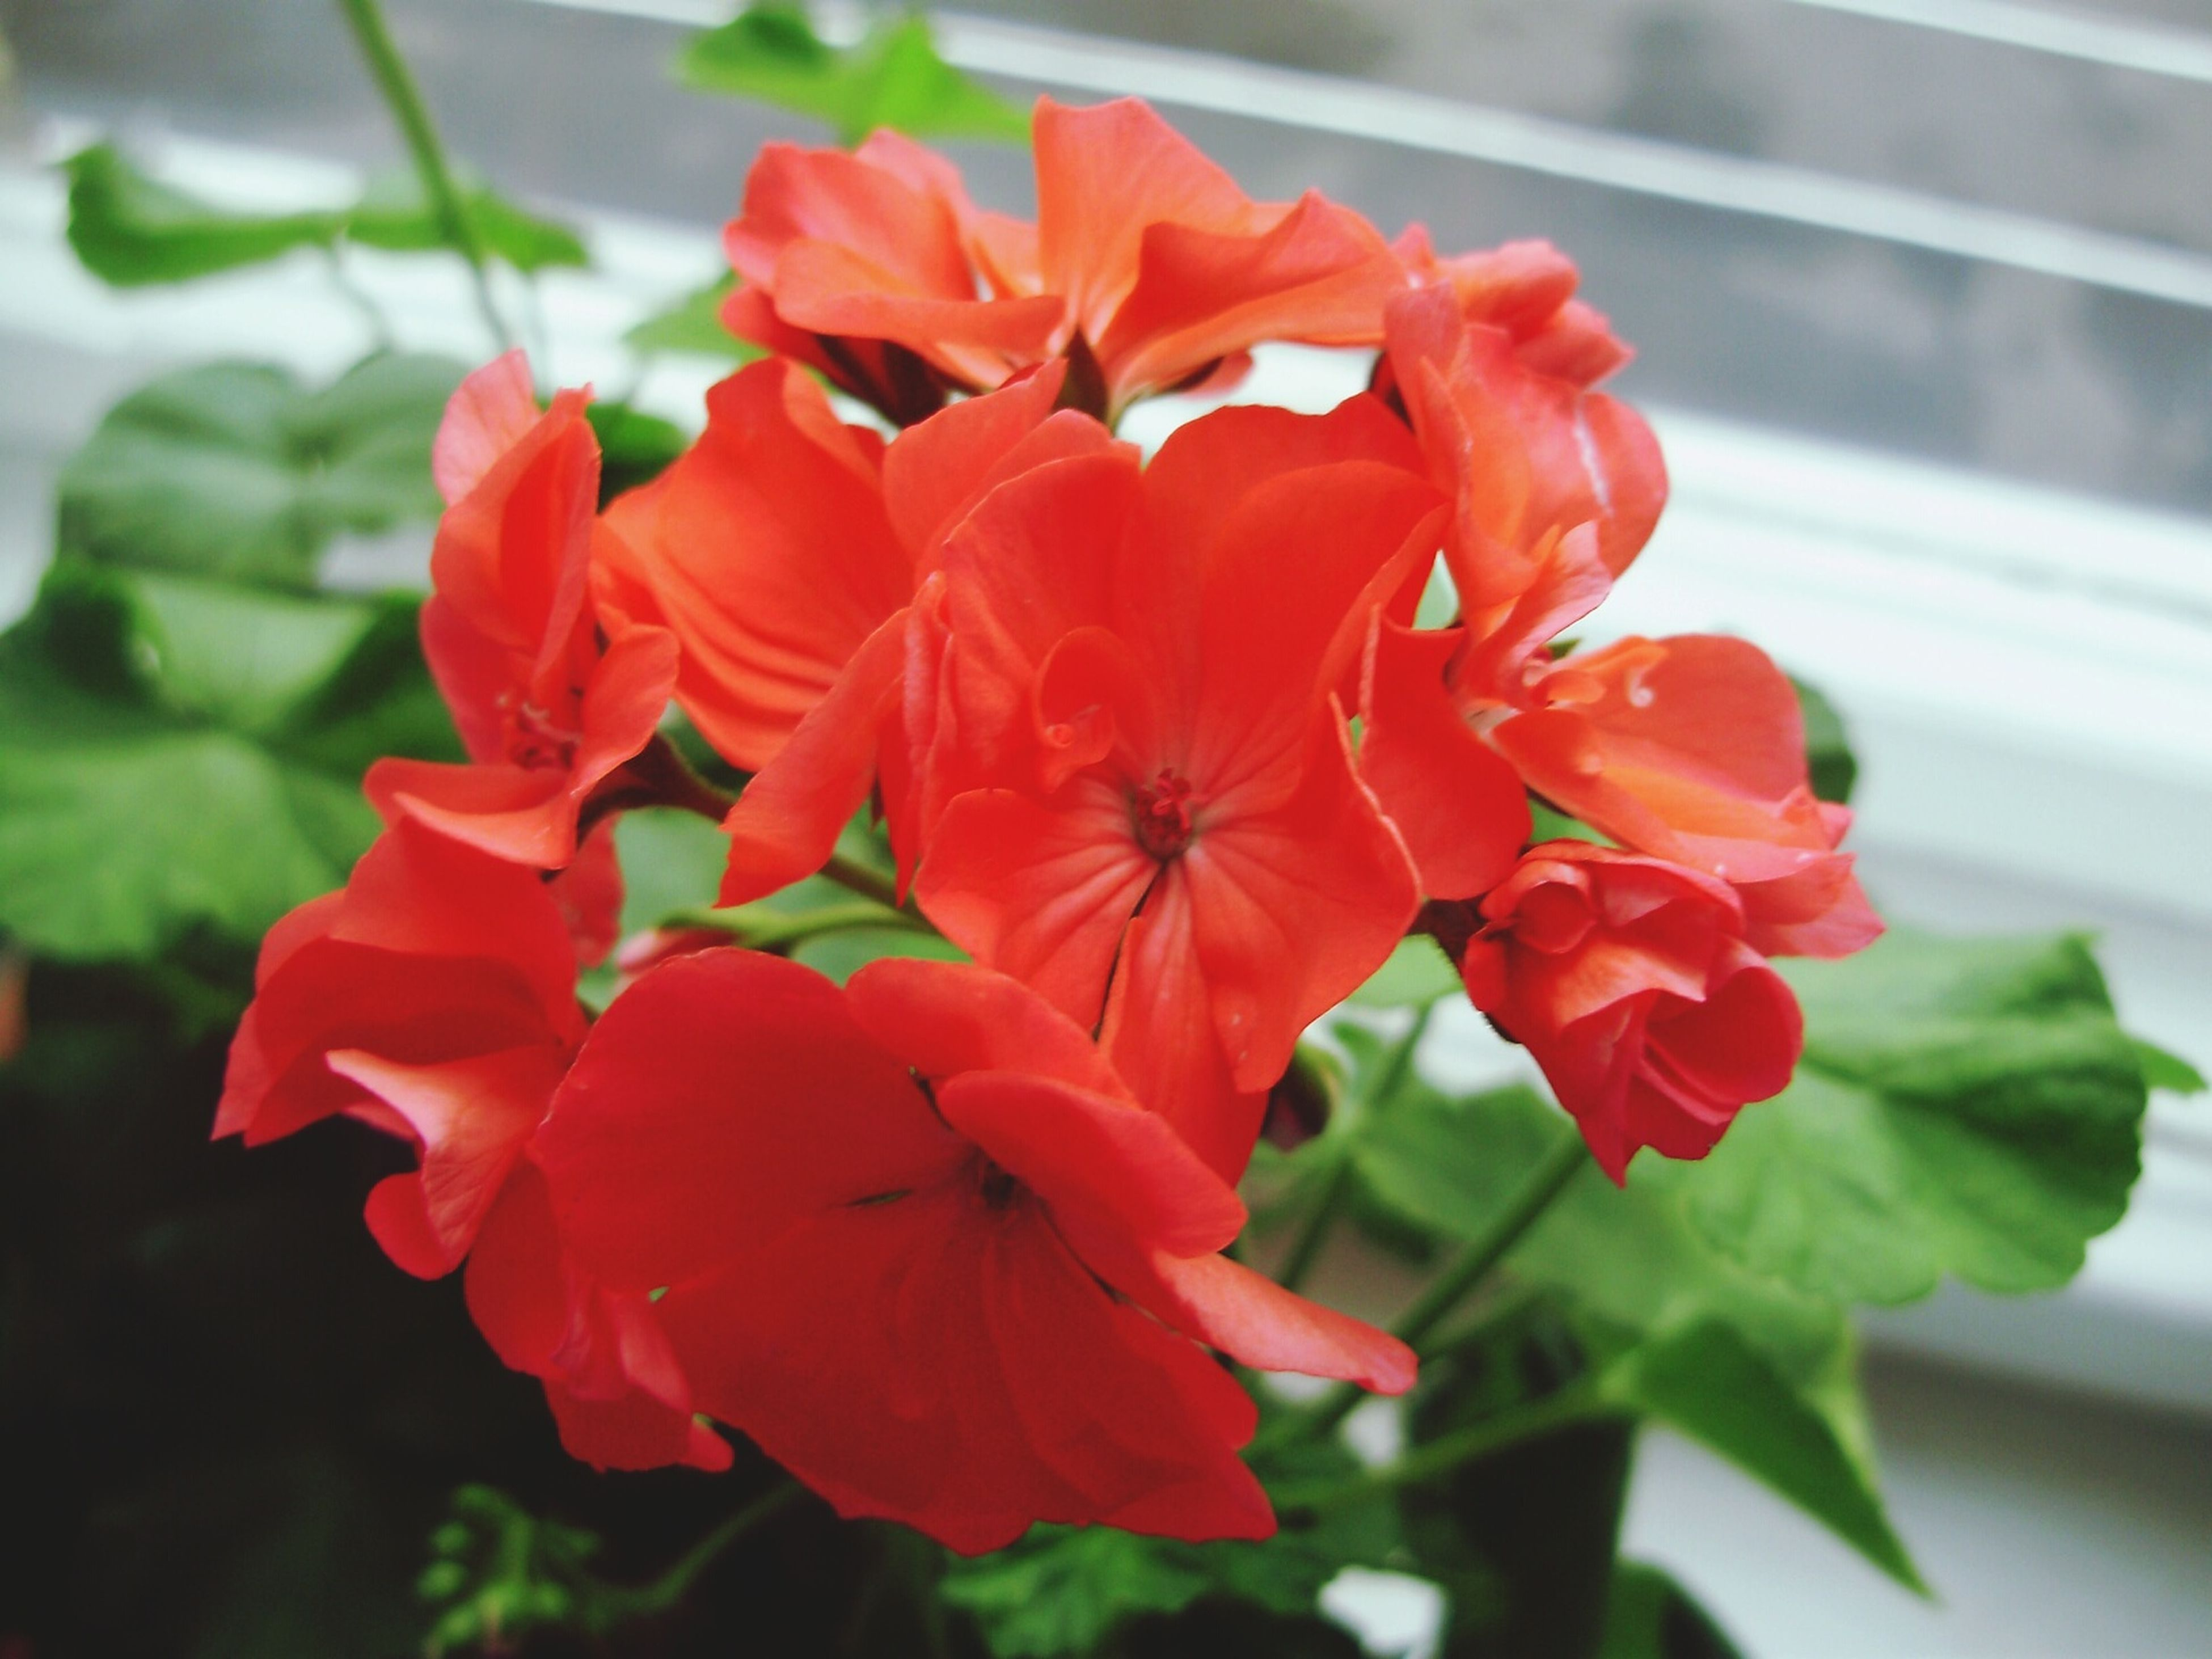 flower, petal, freshness, flower head, fragility, red, growth, beauty in nature, close-up, blooming, plant, focus on foreground, nature, in bloom, orange color, leaf, day, indoors, blossom, no people